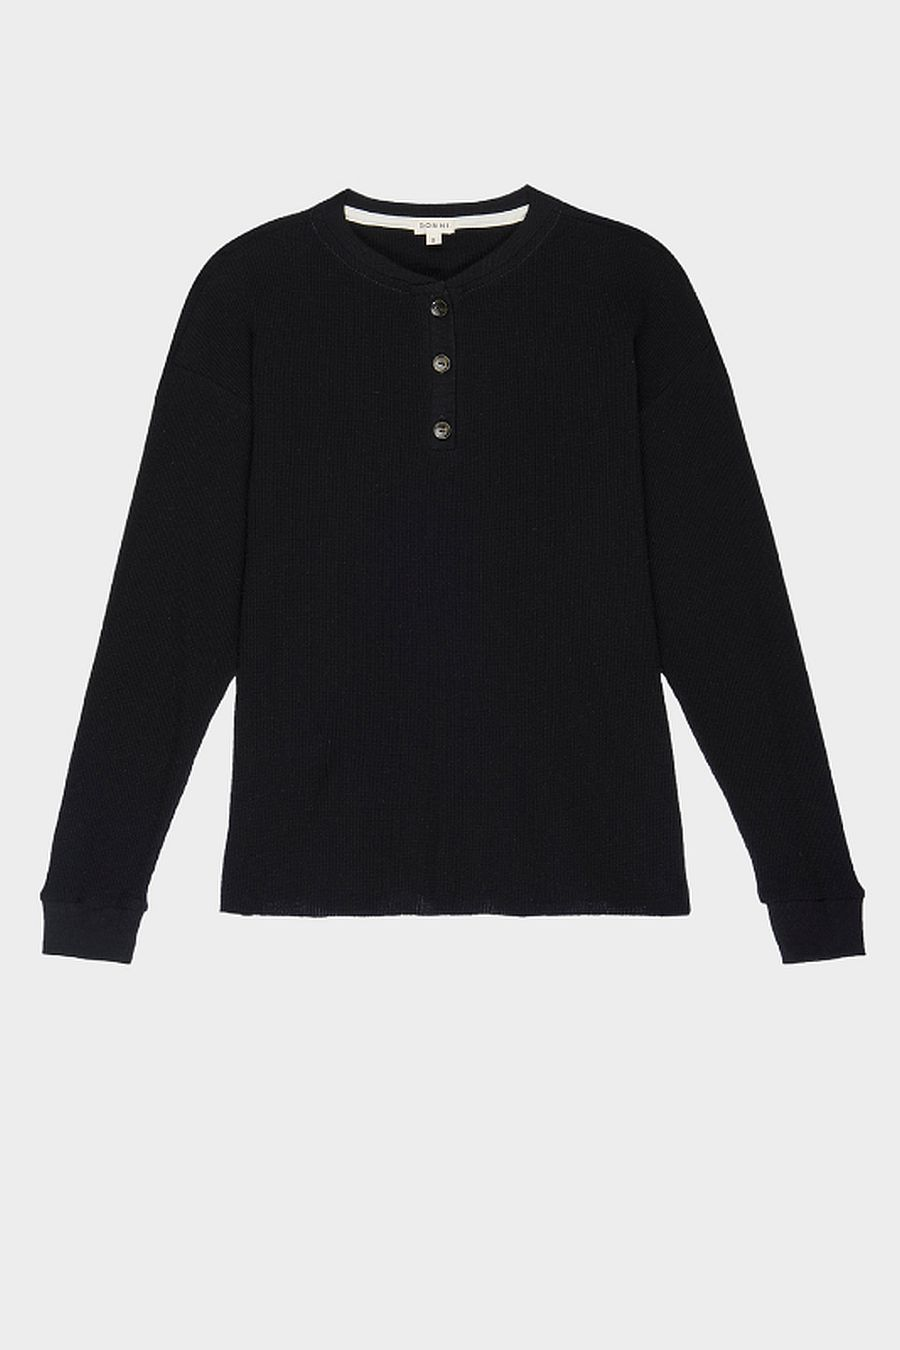 DONNI. Thermal Henley - Black